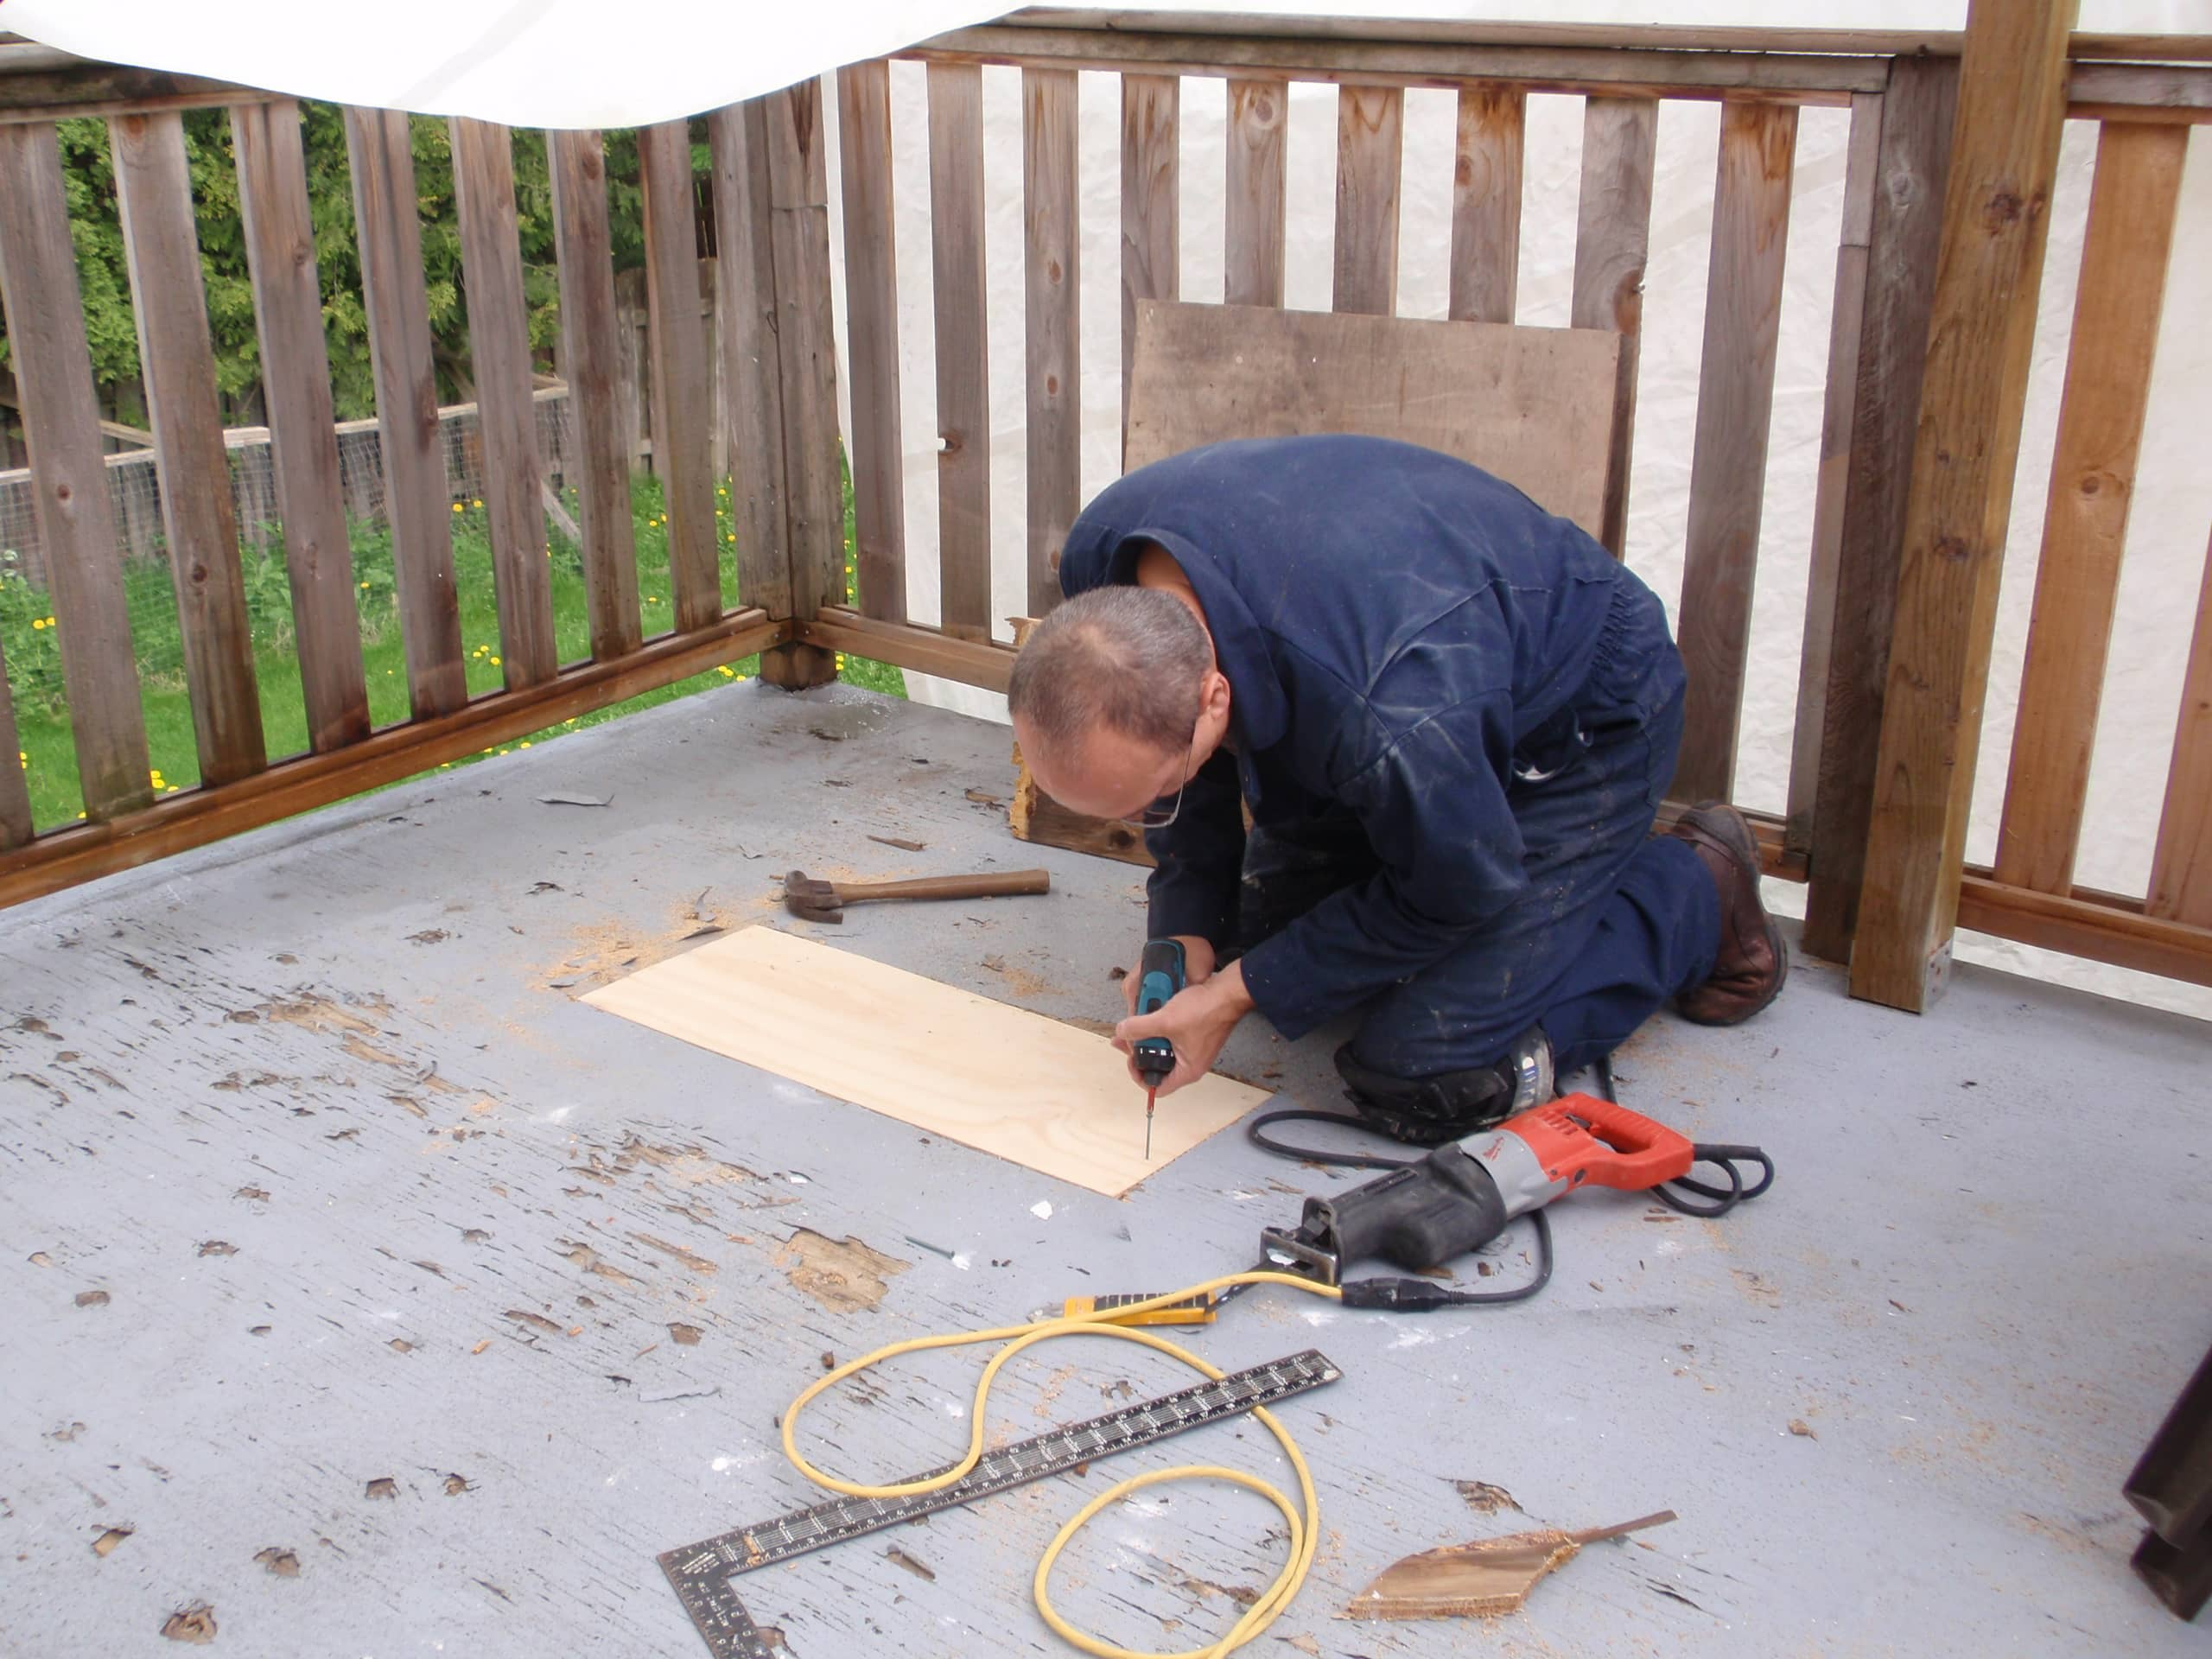 Patching a hole in a wooden deck